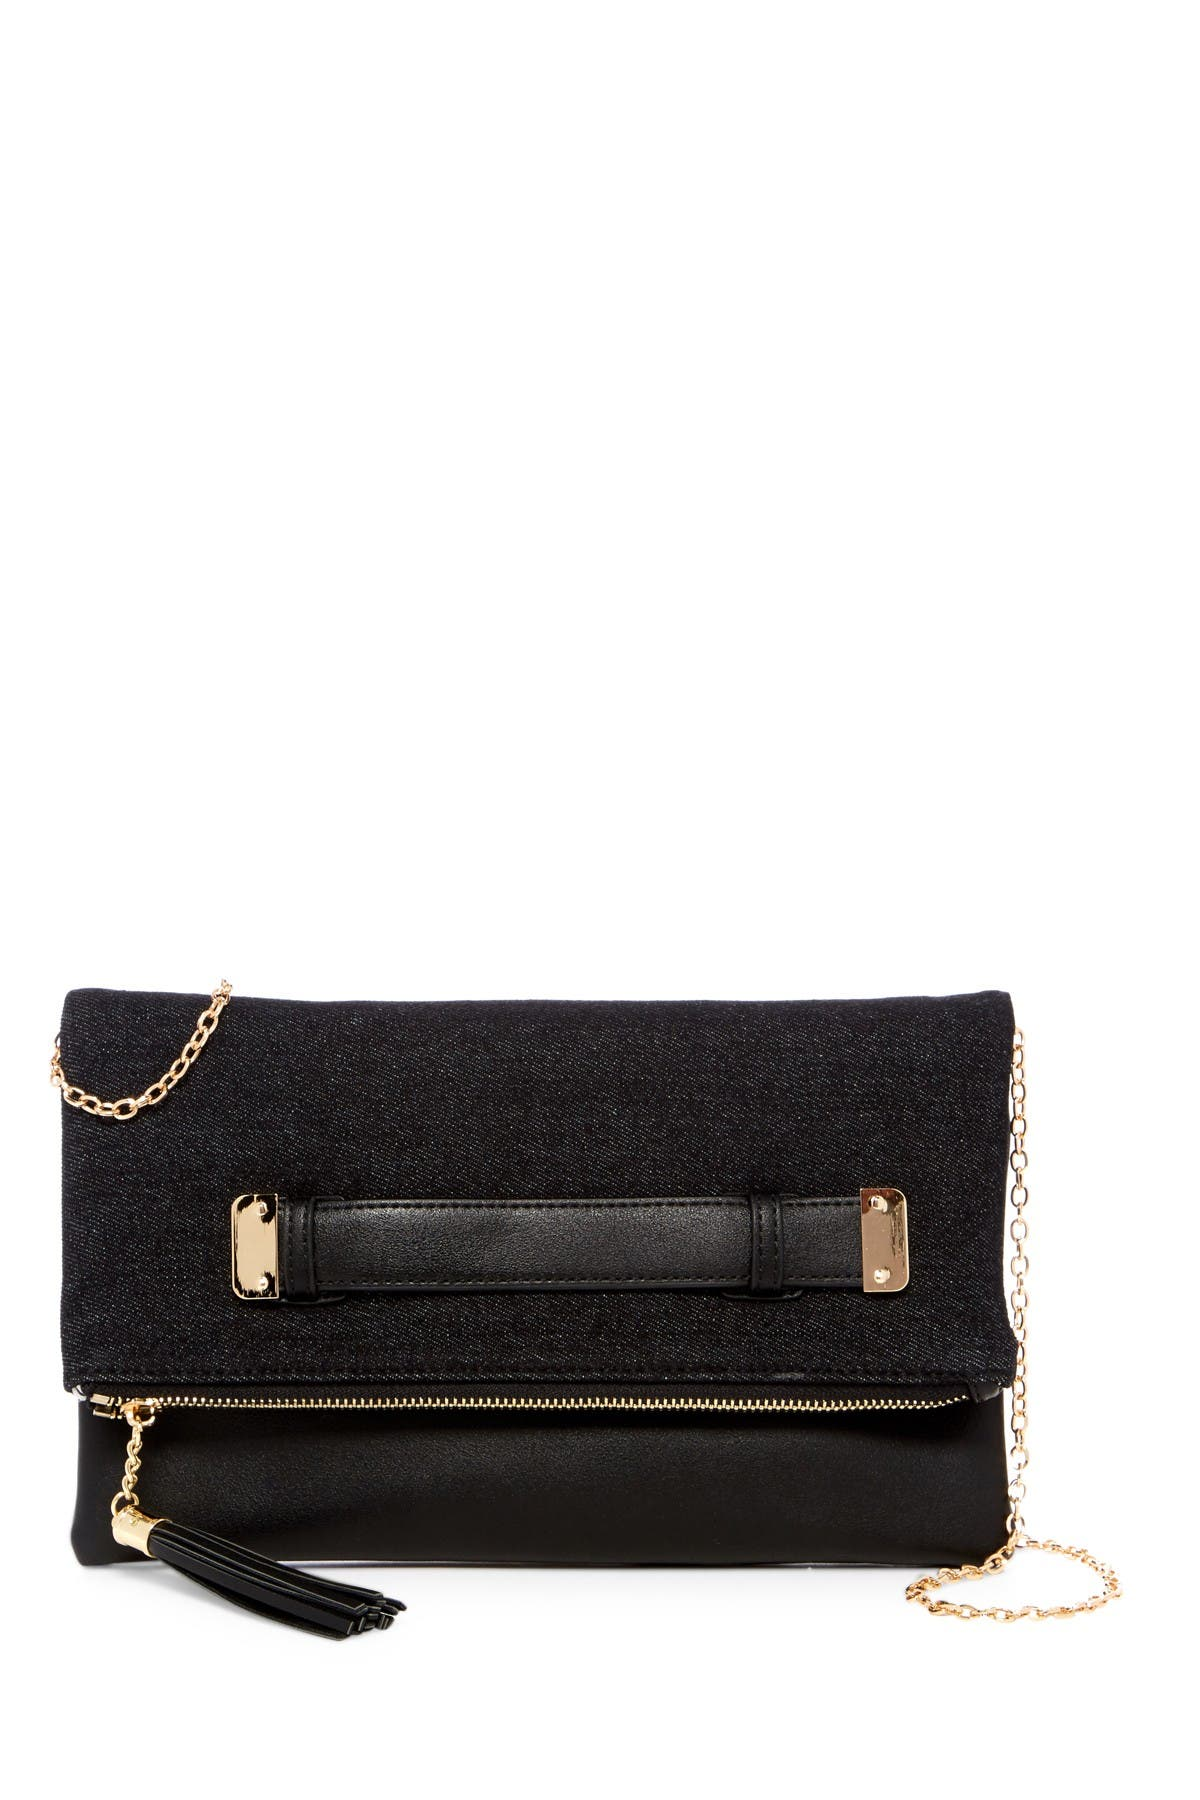 Image of Urban Expressions Slate Vegan Leather Clutch